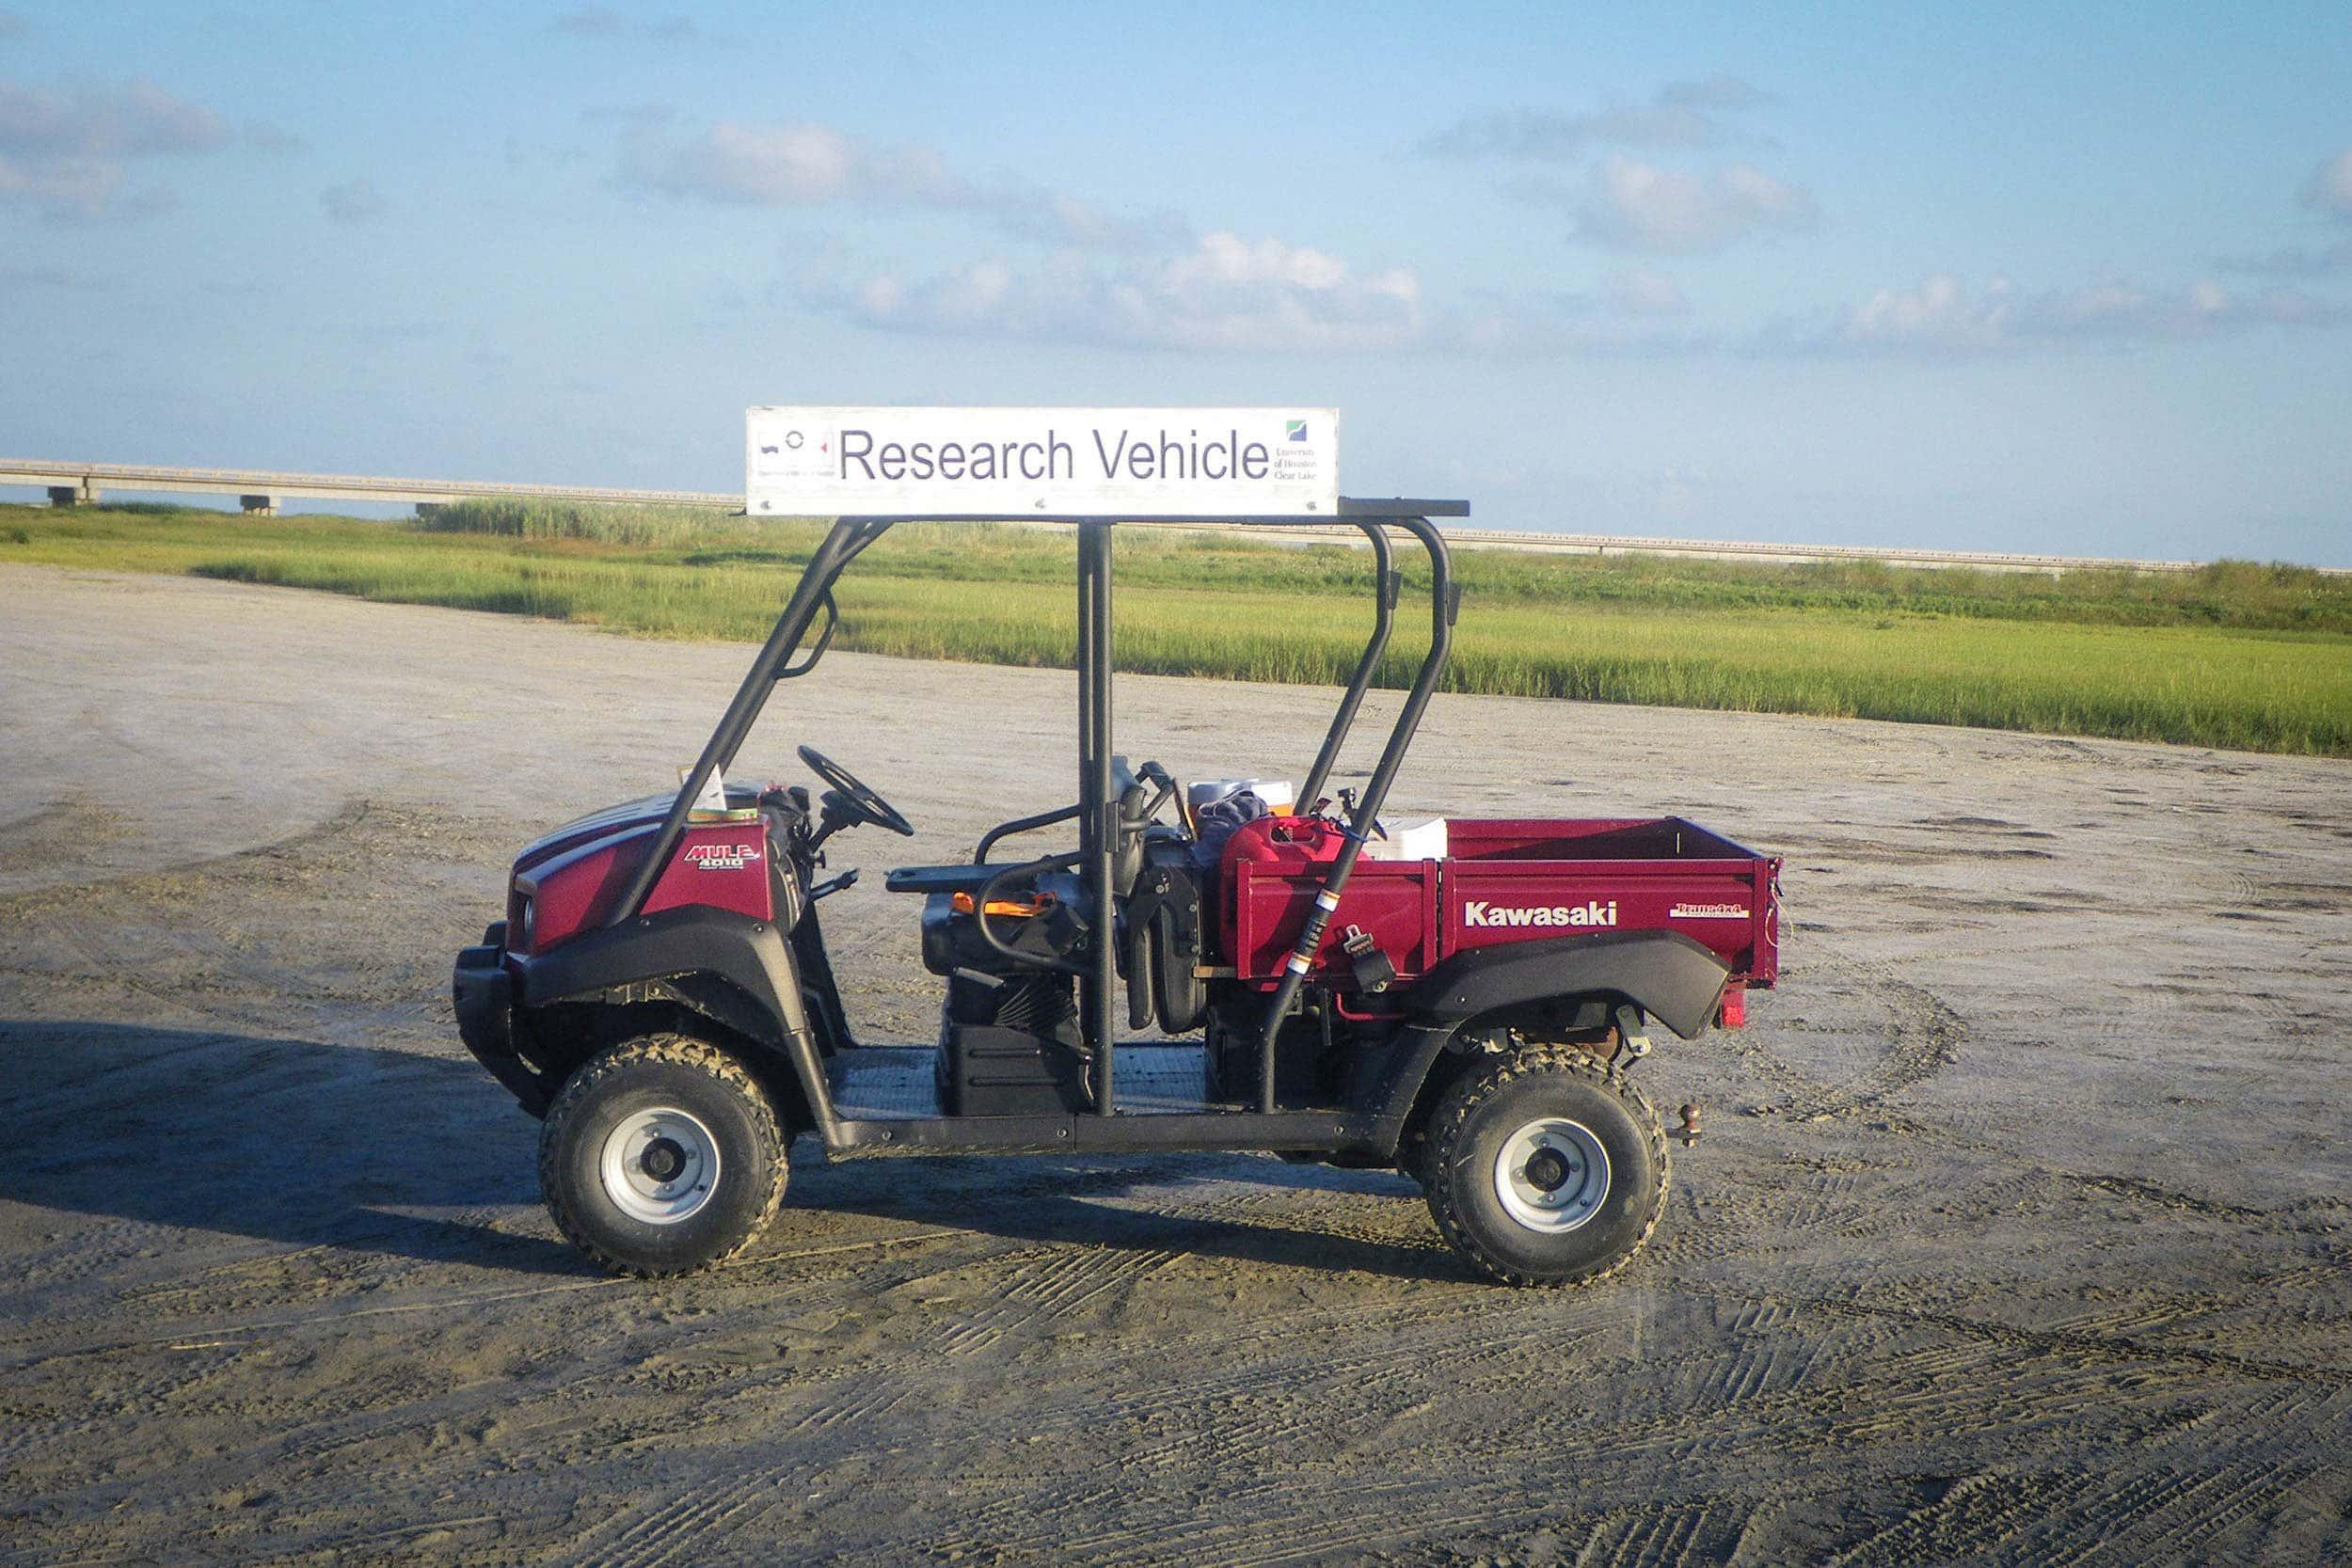 EIH's Kawasaki mule allows access to remote study sites.